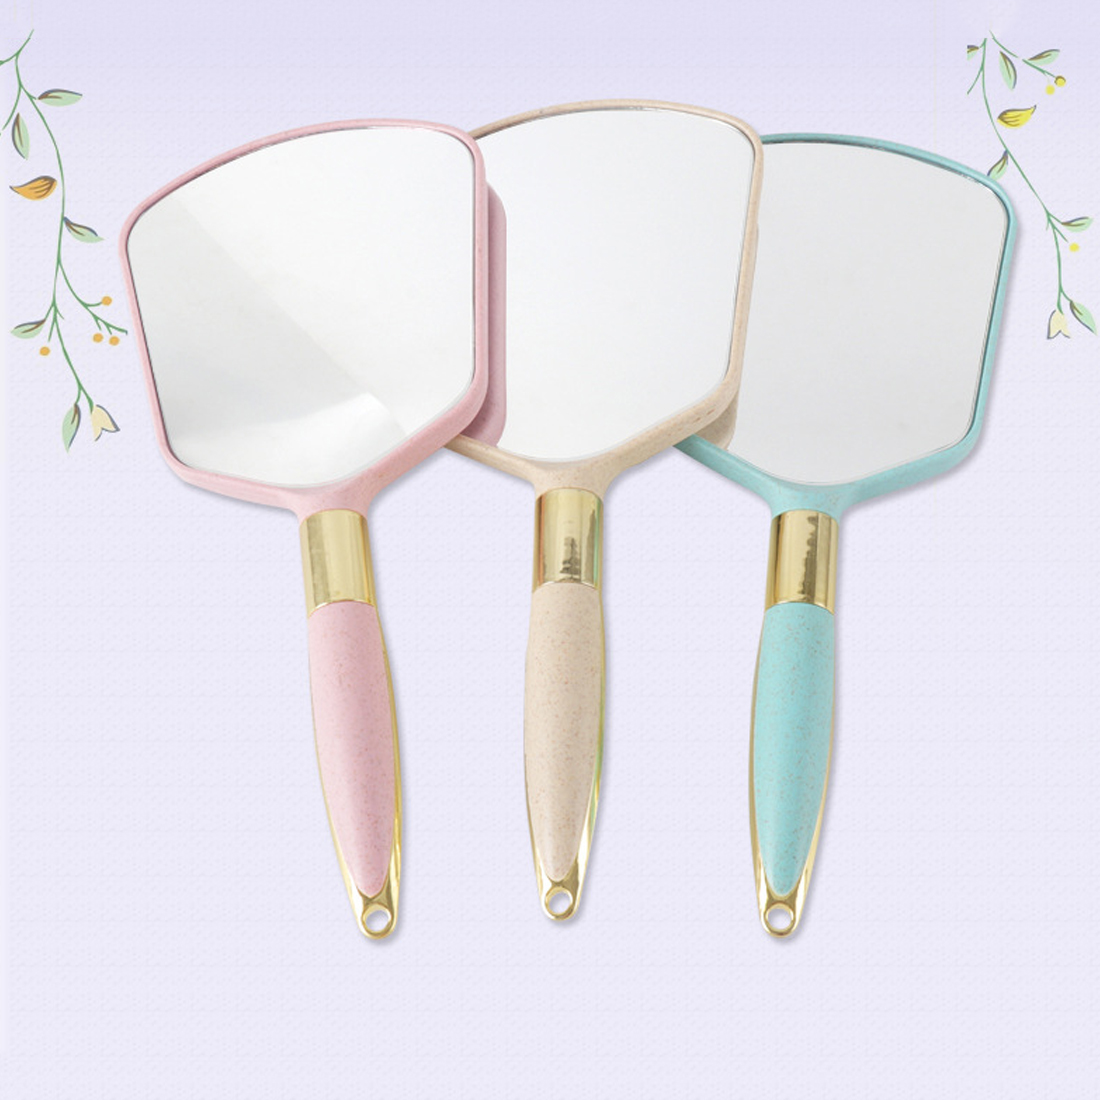 Good 1PC Cute Pink White Plastic Vintage Hand mirrors Makeup Vanity Mirror Rectangle Hand Hold Cosmetic Mirror With Handle